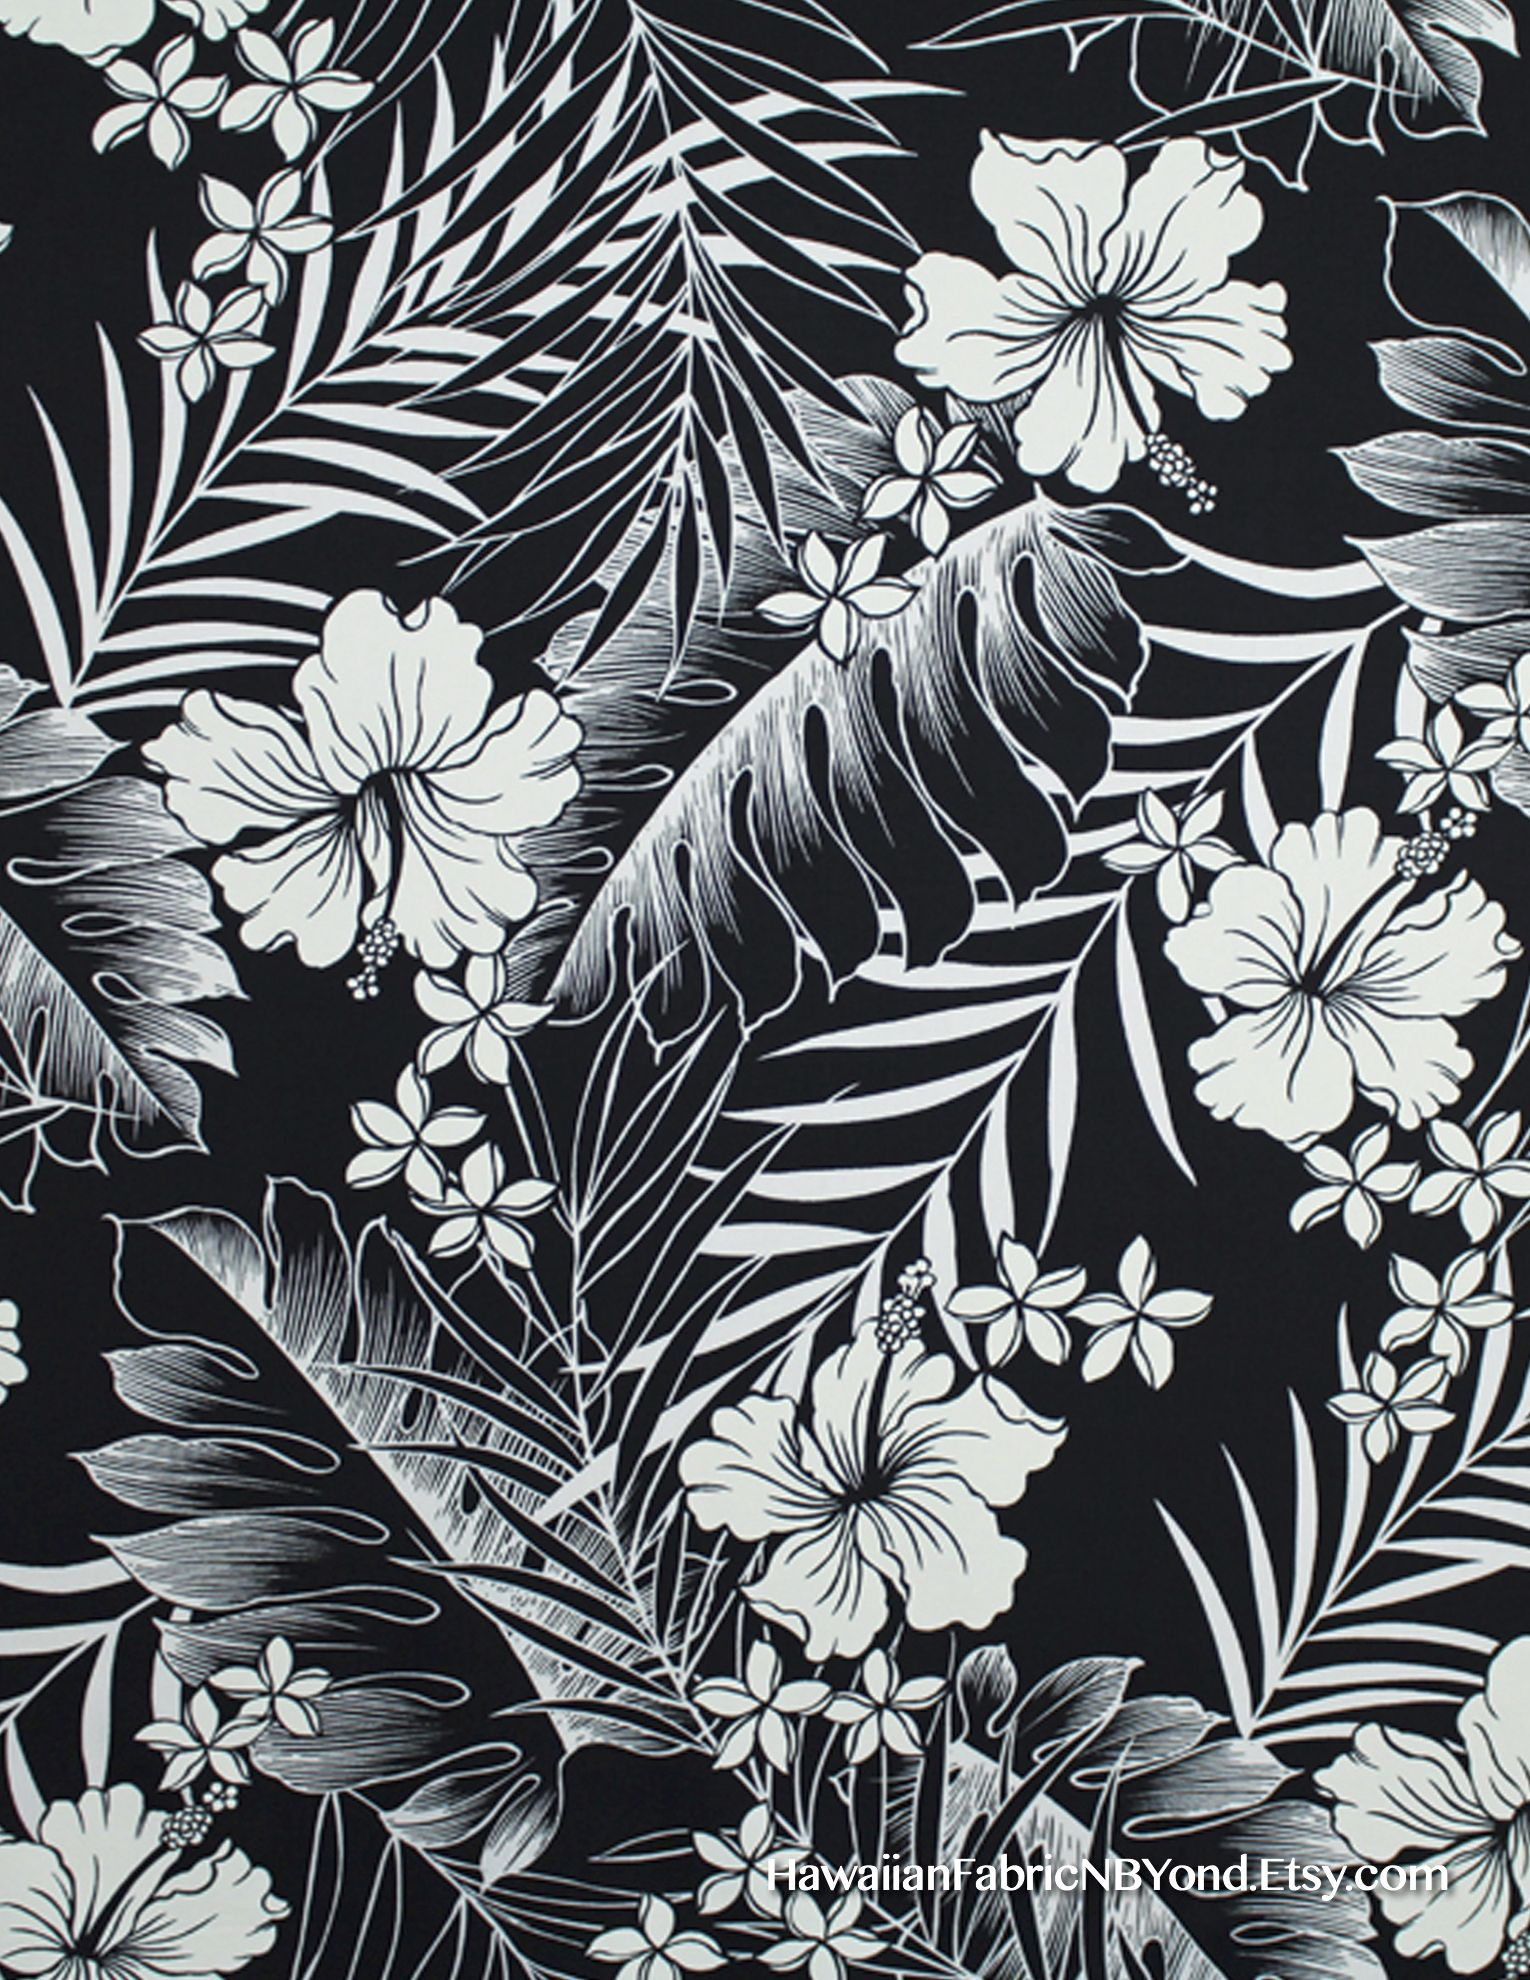 Fabric Hibiscus Flowers Monstera And Tropical Ferns In Black And Off White By Hawaiianfabricnbyond Ets Black And White Flowers Tropical Illustration Artwork